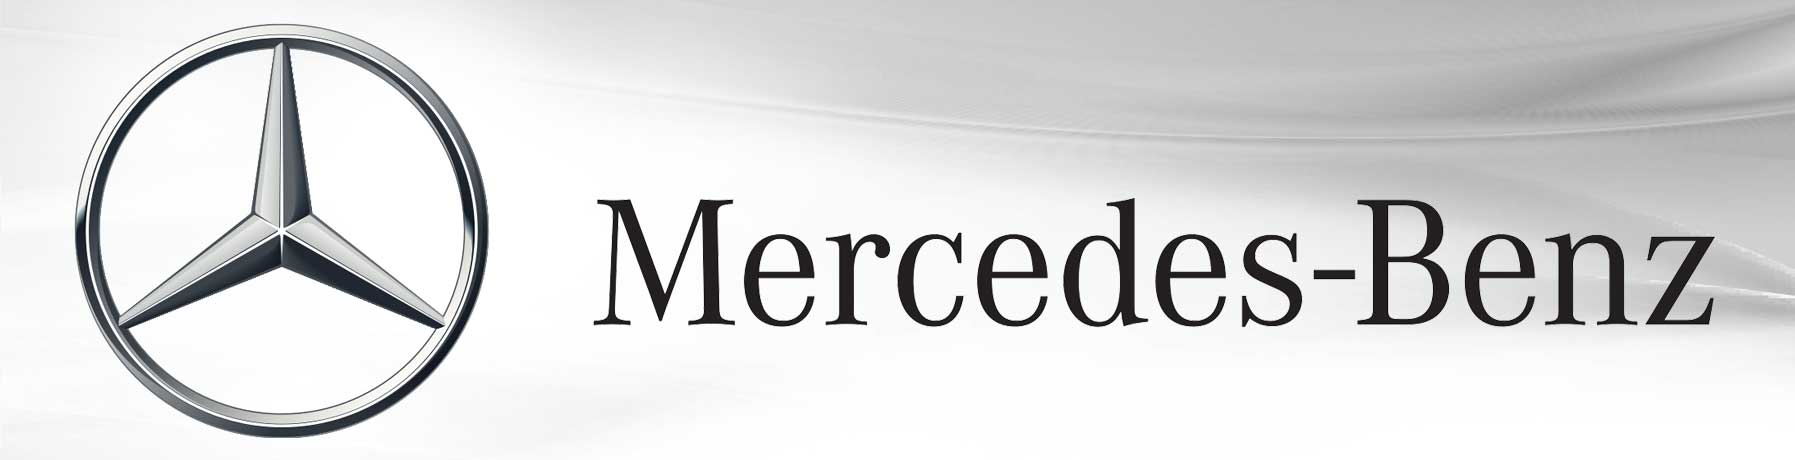 We service Mercedes Benz